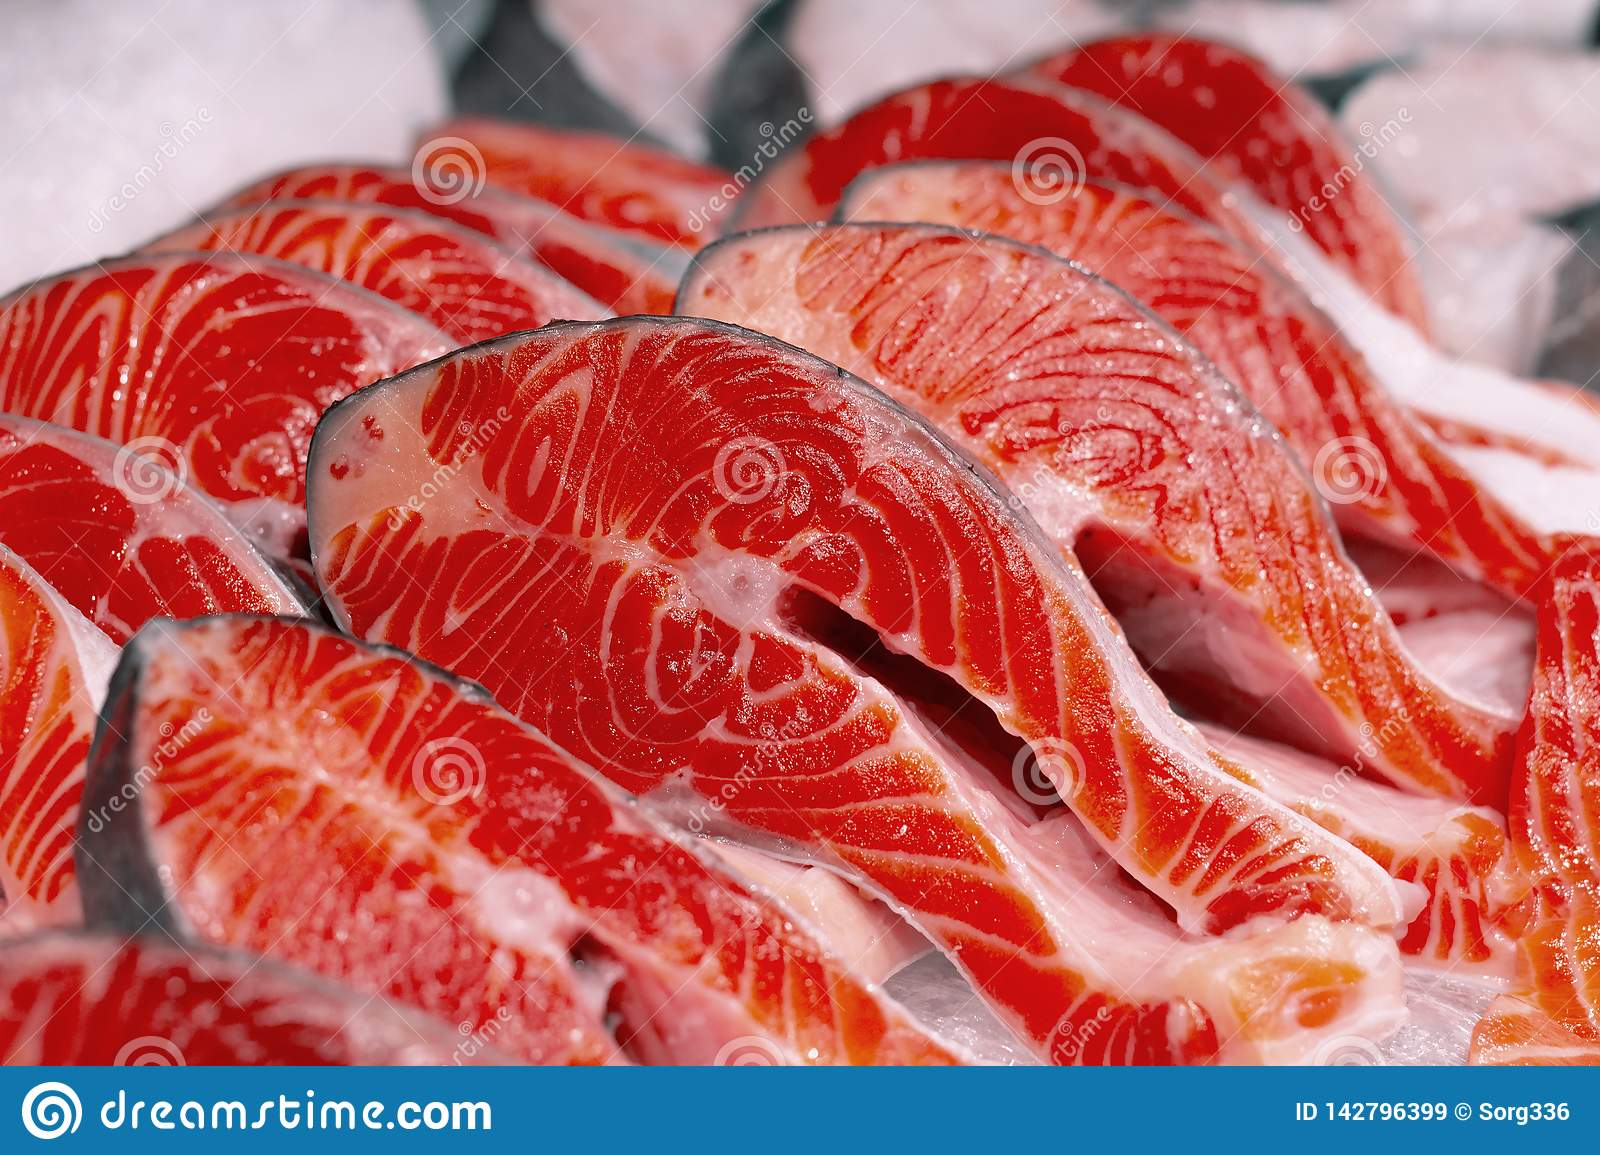 Fresh trout sliced for grilling or barbecue